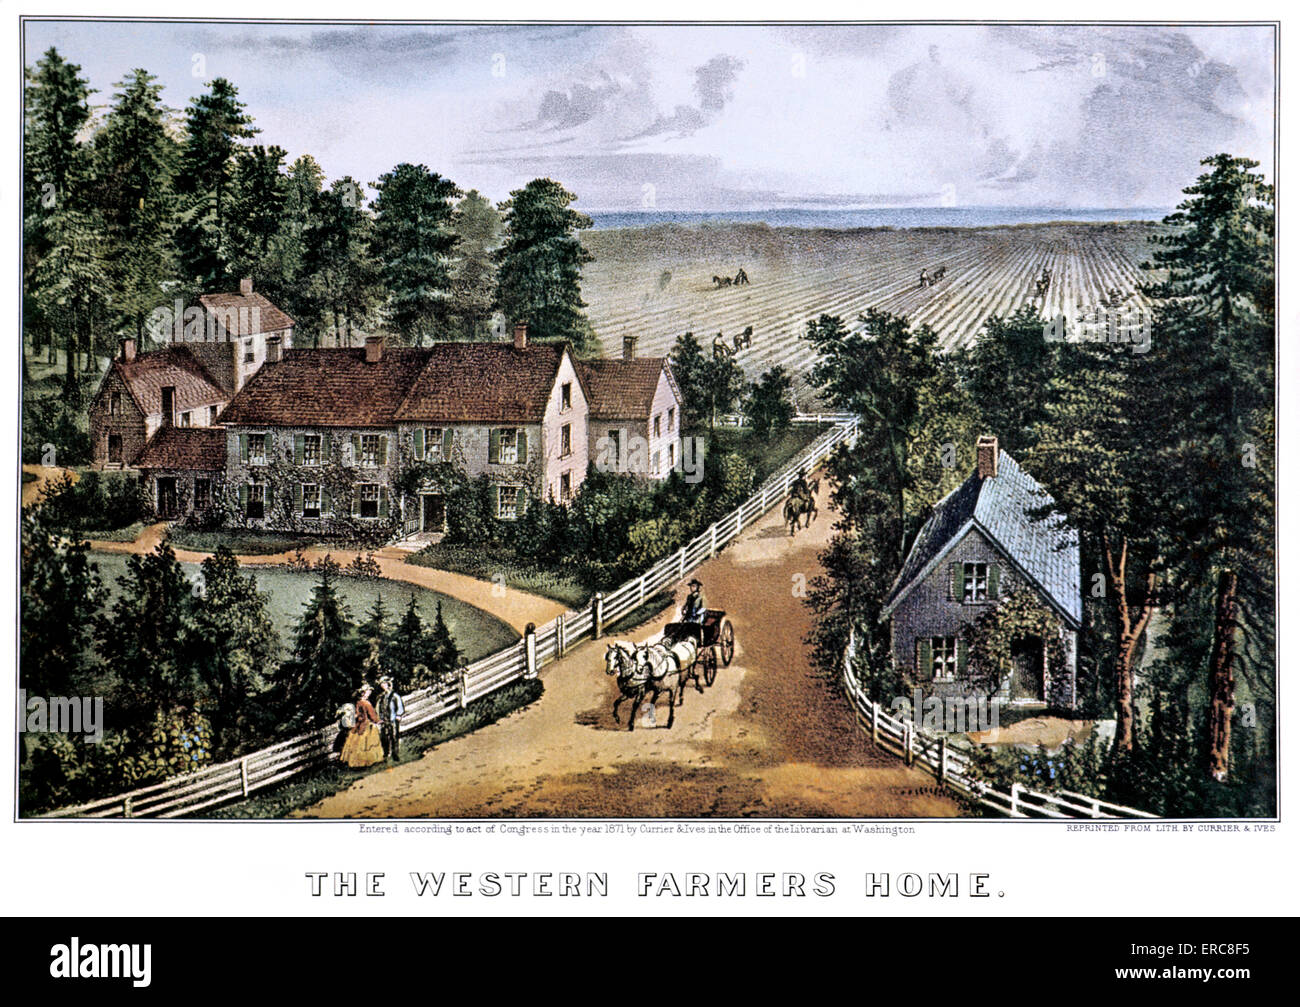 1870s THE WESTERN FARMERS HOME   CURRIER   IVES LITHOGRAPH   1871. 1870s THE WESTERN FARMERS HOME   CURRIER   IVES LITHOGRAPH   1871